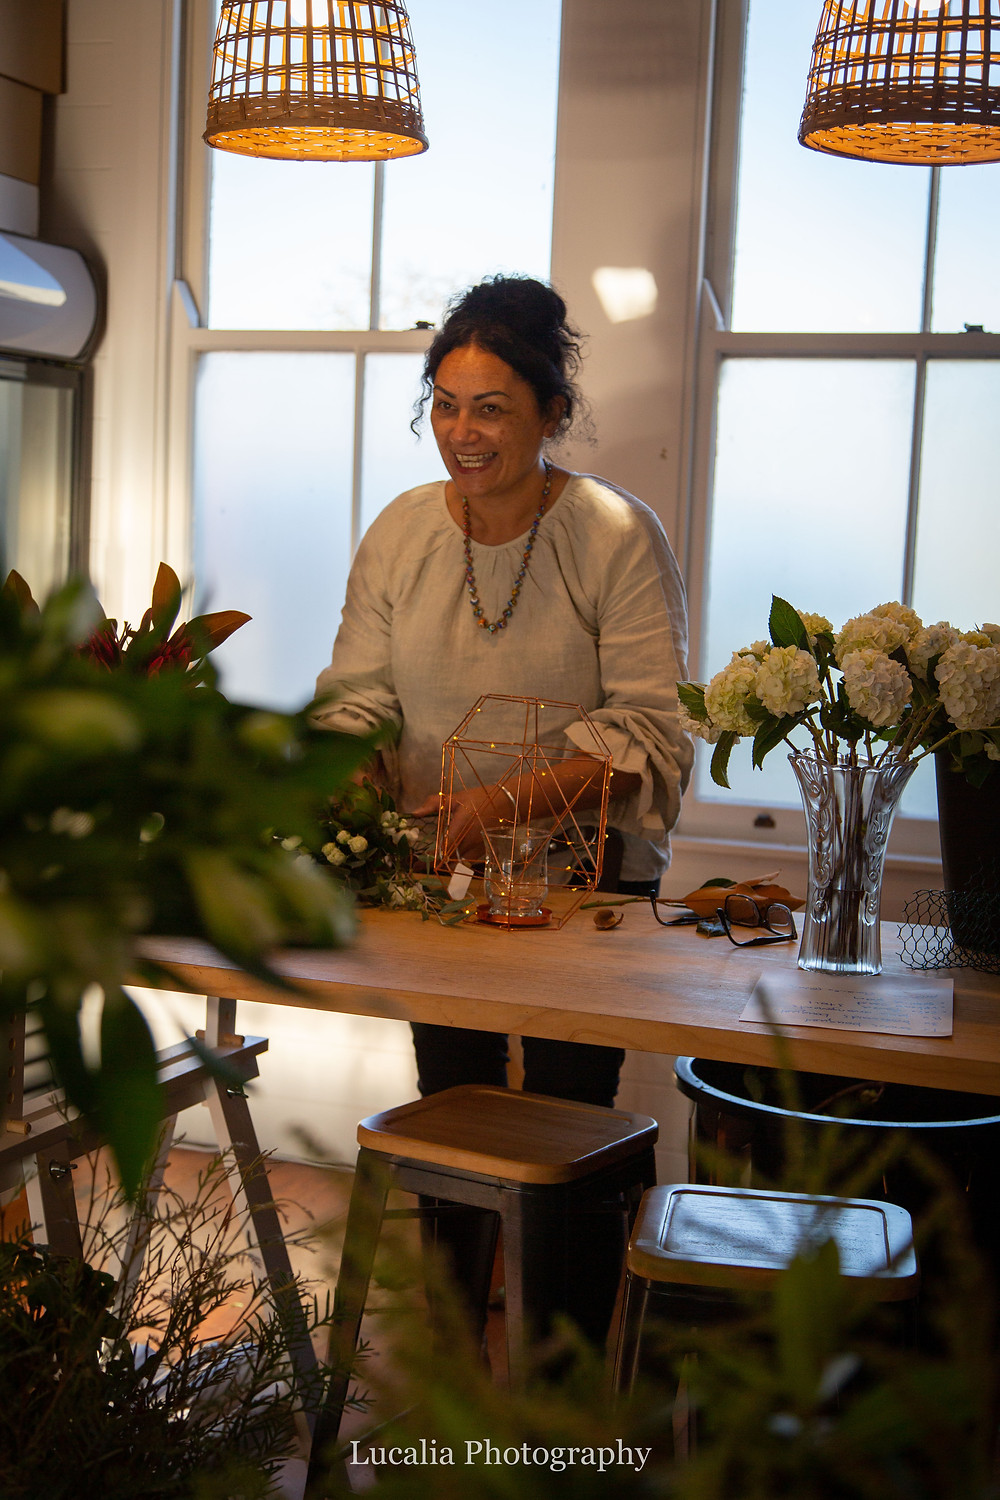 wedding florist laughing with flowers and copper vase, Wairarapa